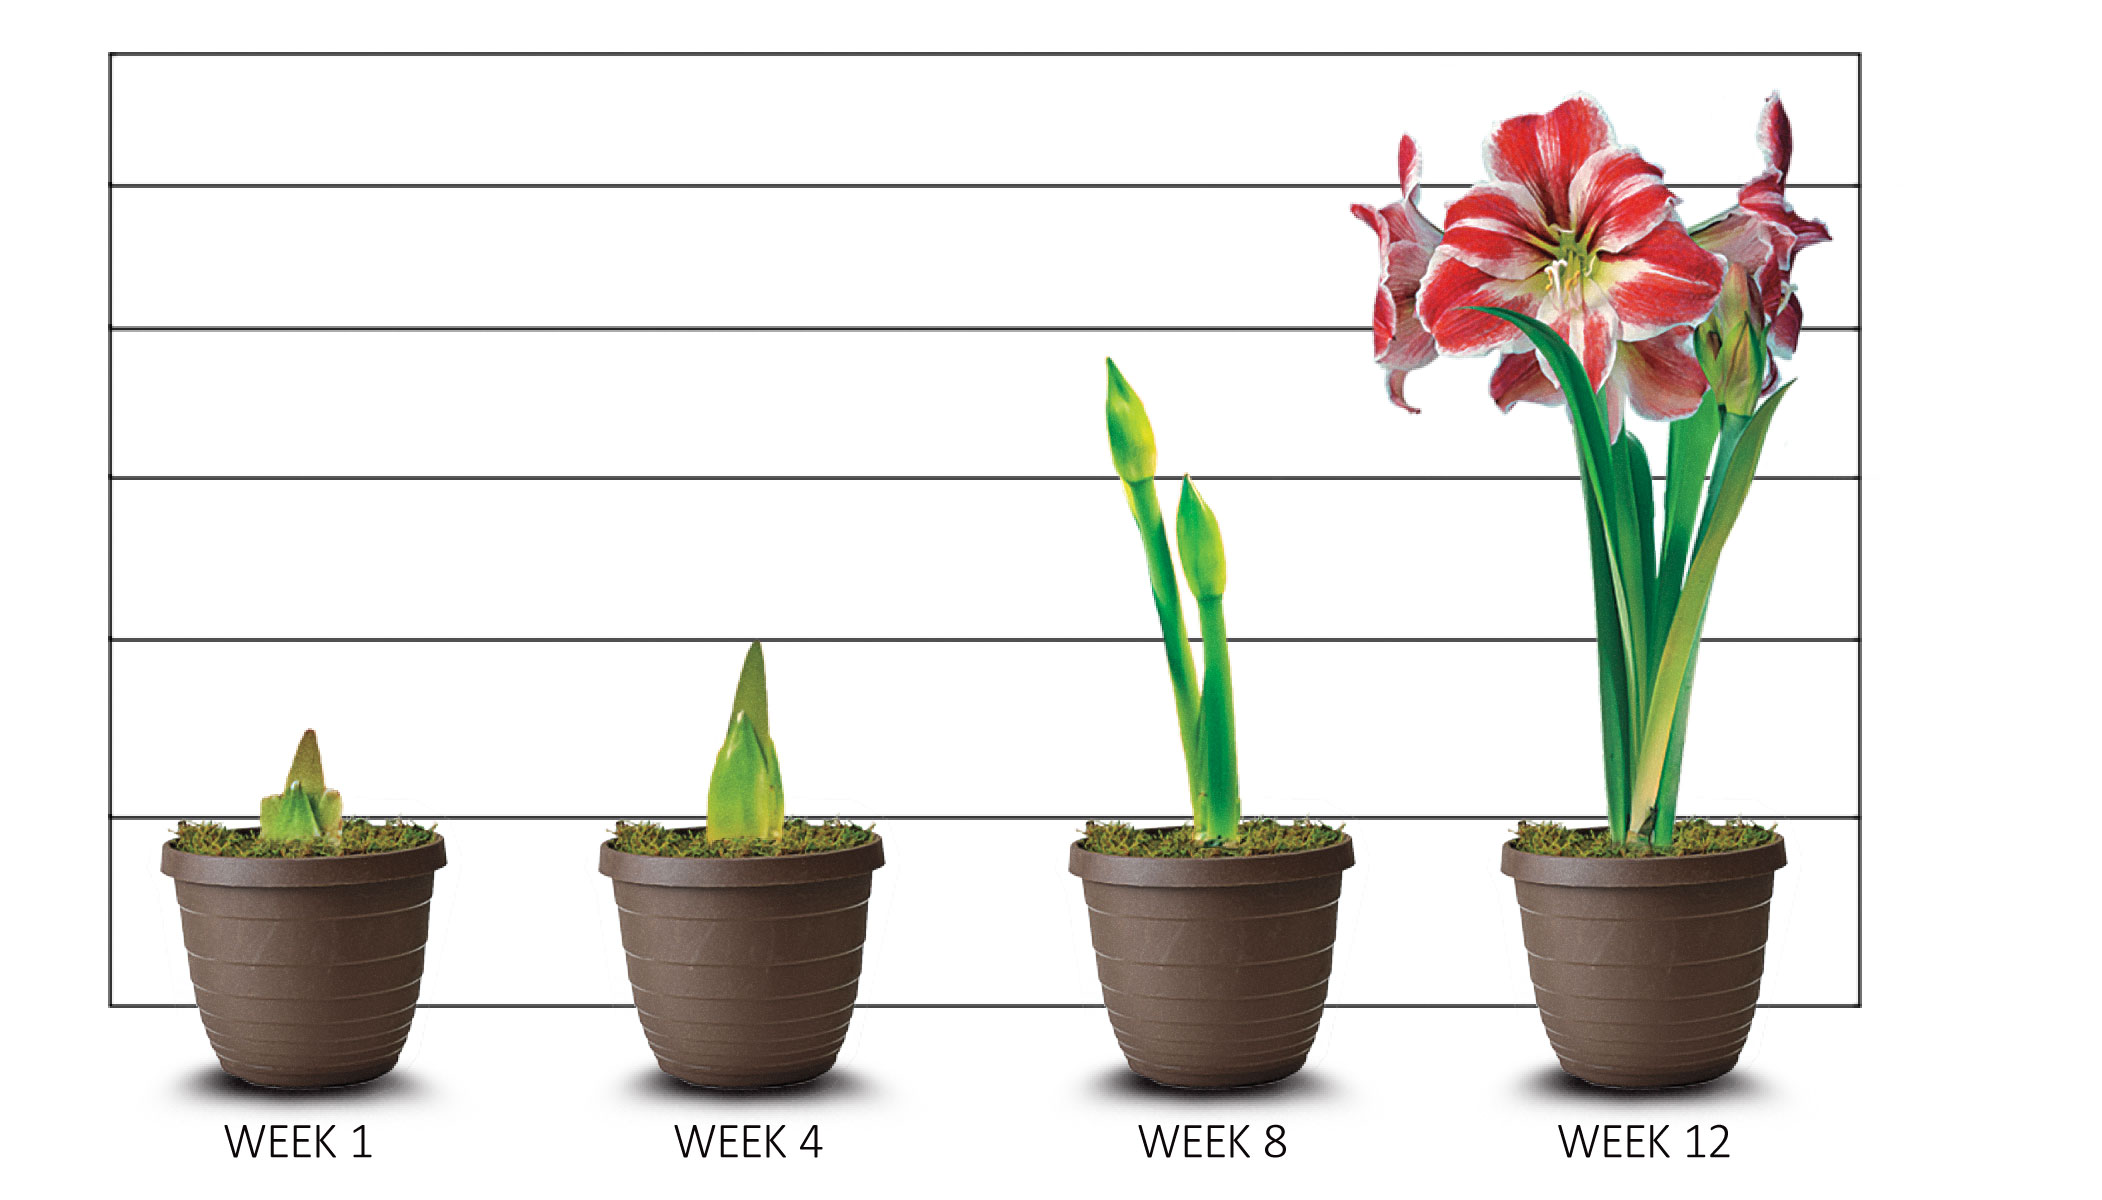 Amaryllis Growth Stages